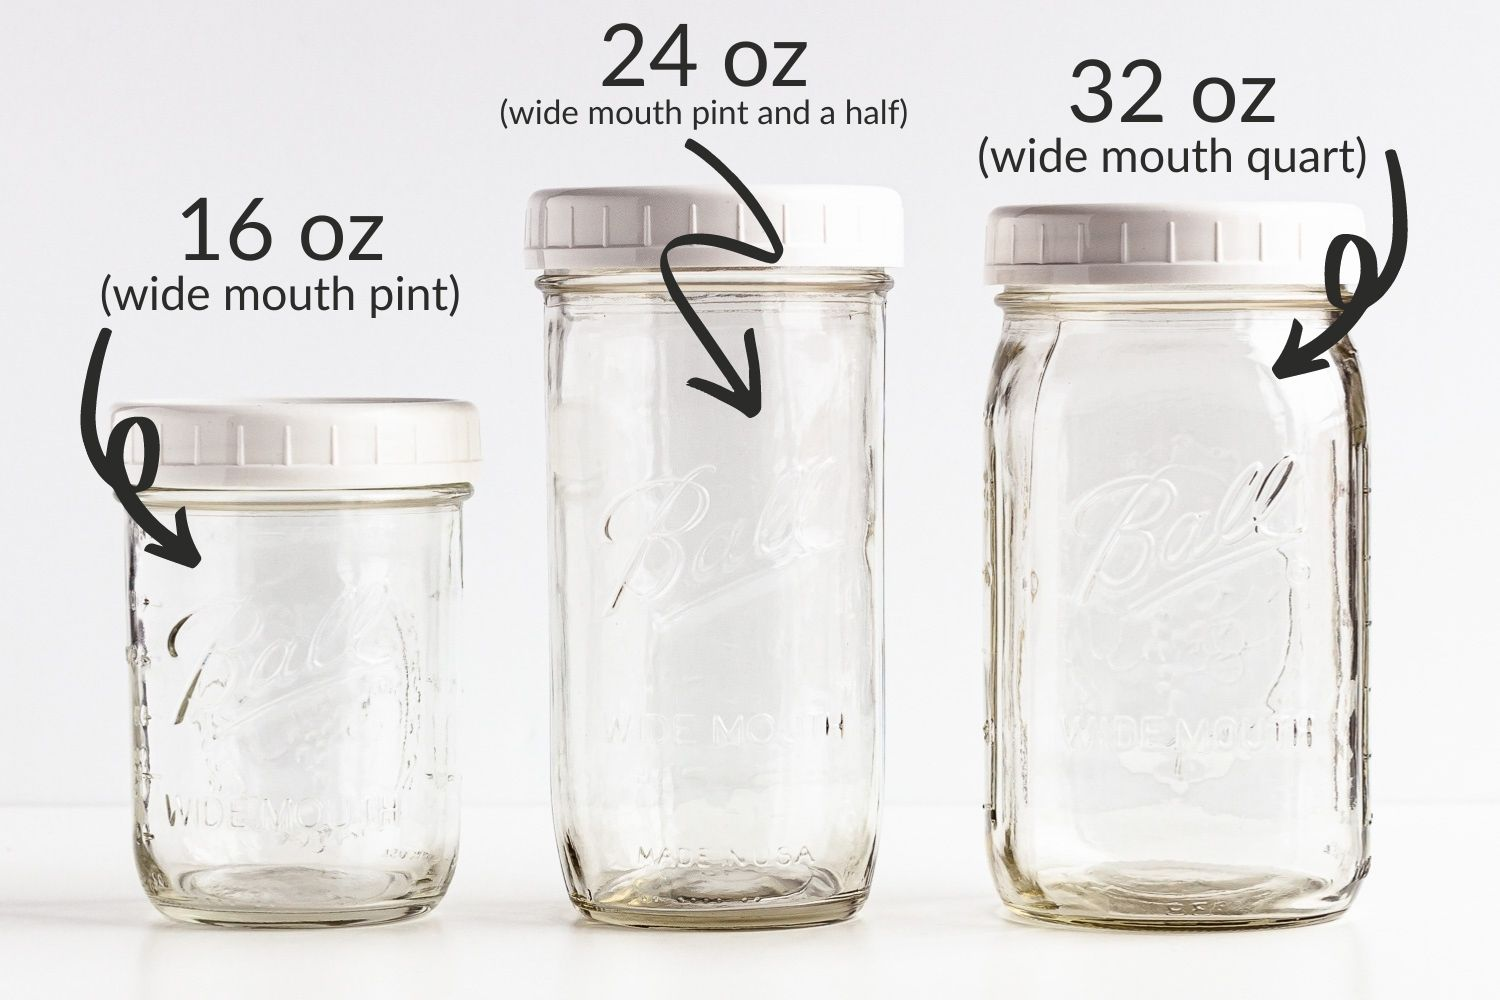 Graphic showing 16 oz, 24 oz and 32 oz mason jars with plastic lids.